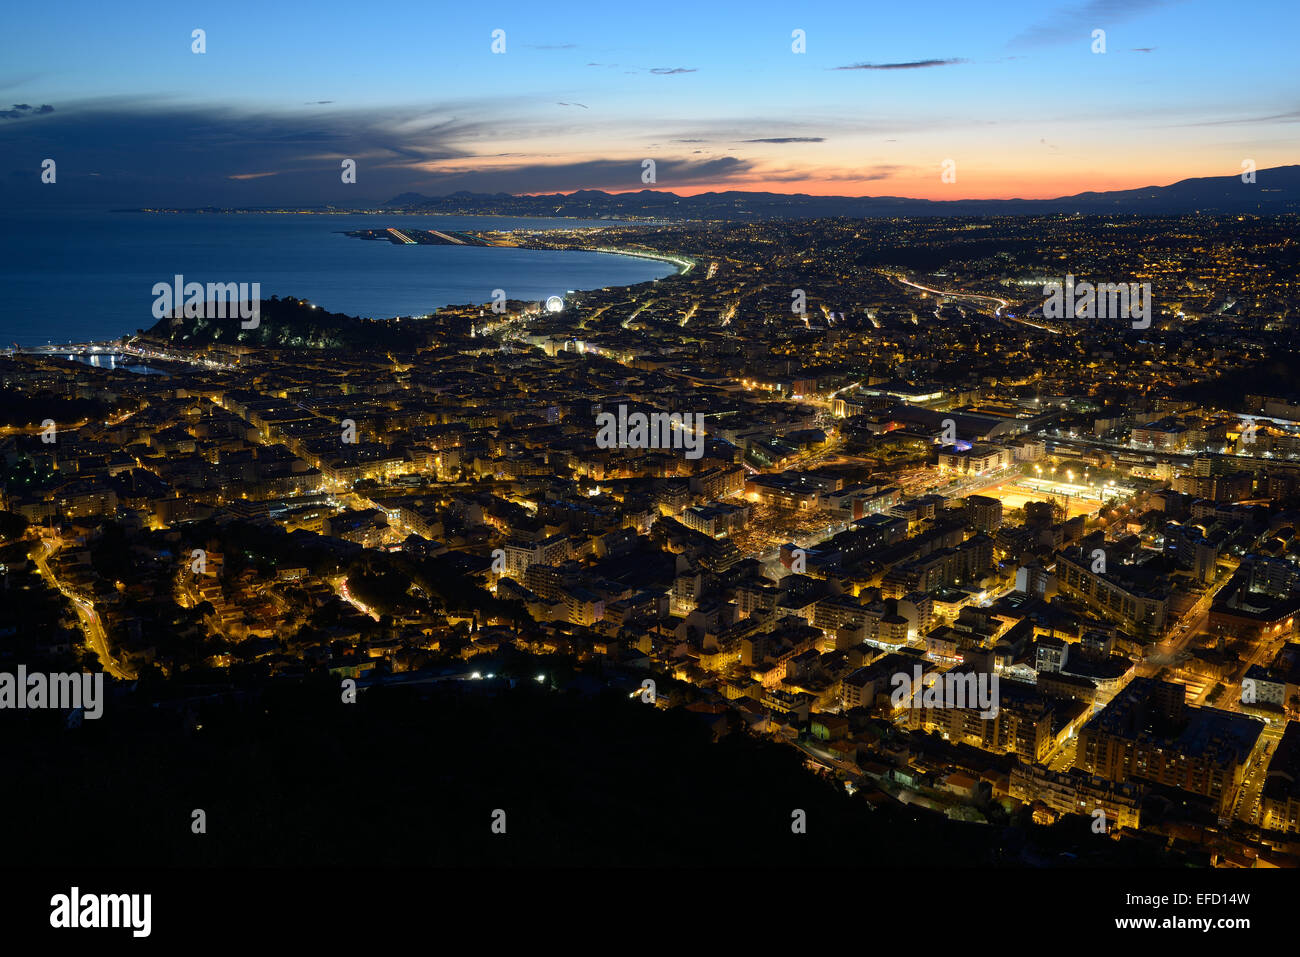 CITY OF NICE AT TWILIGHT Alpes-Maritimes, French Riviera, France. - Stock Image